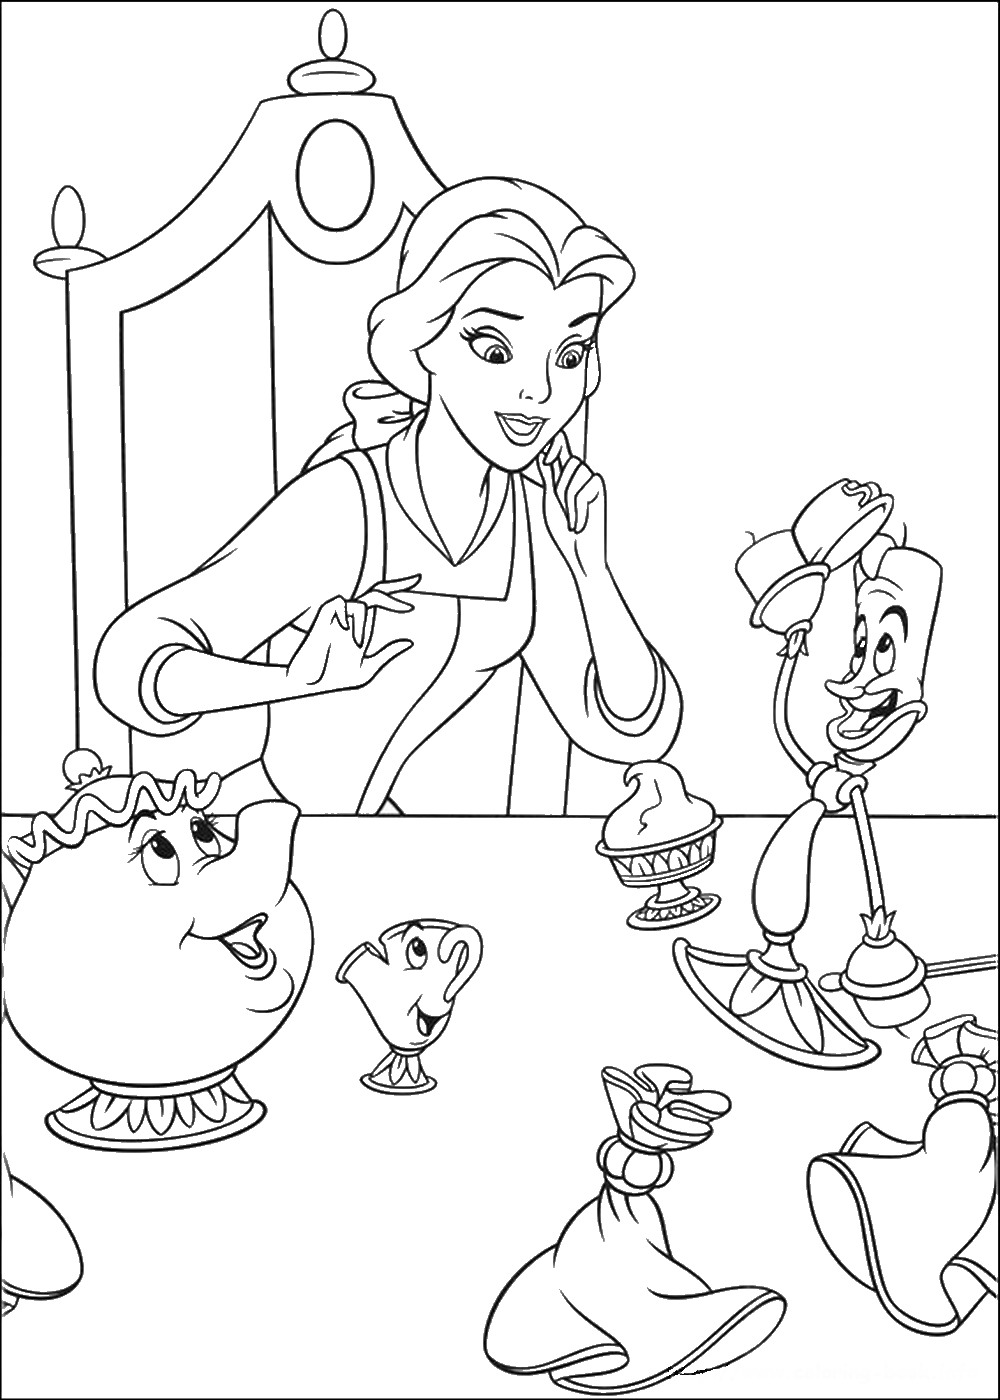 coloring pages beauty and the beast beauty and the beast coloring pages the pages and beast coloring beauty